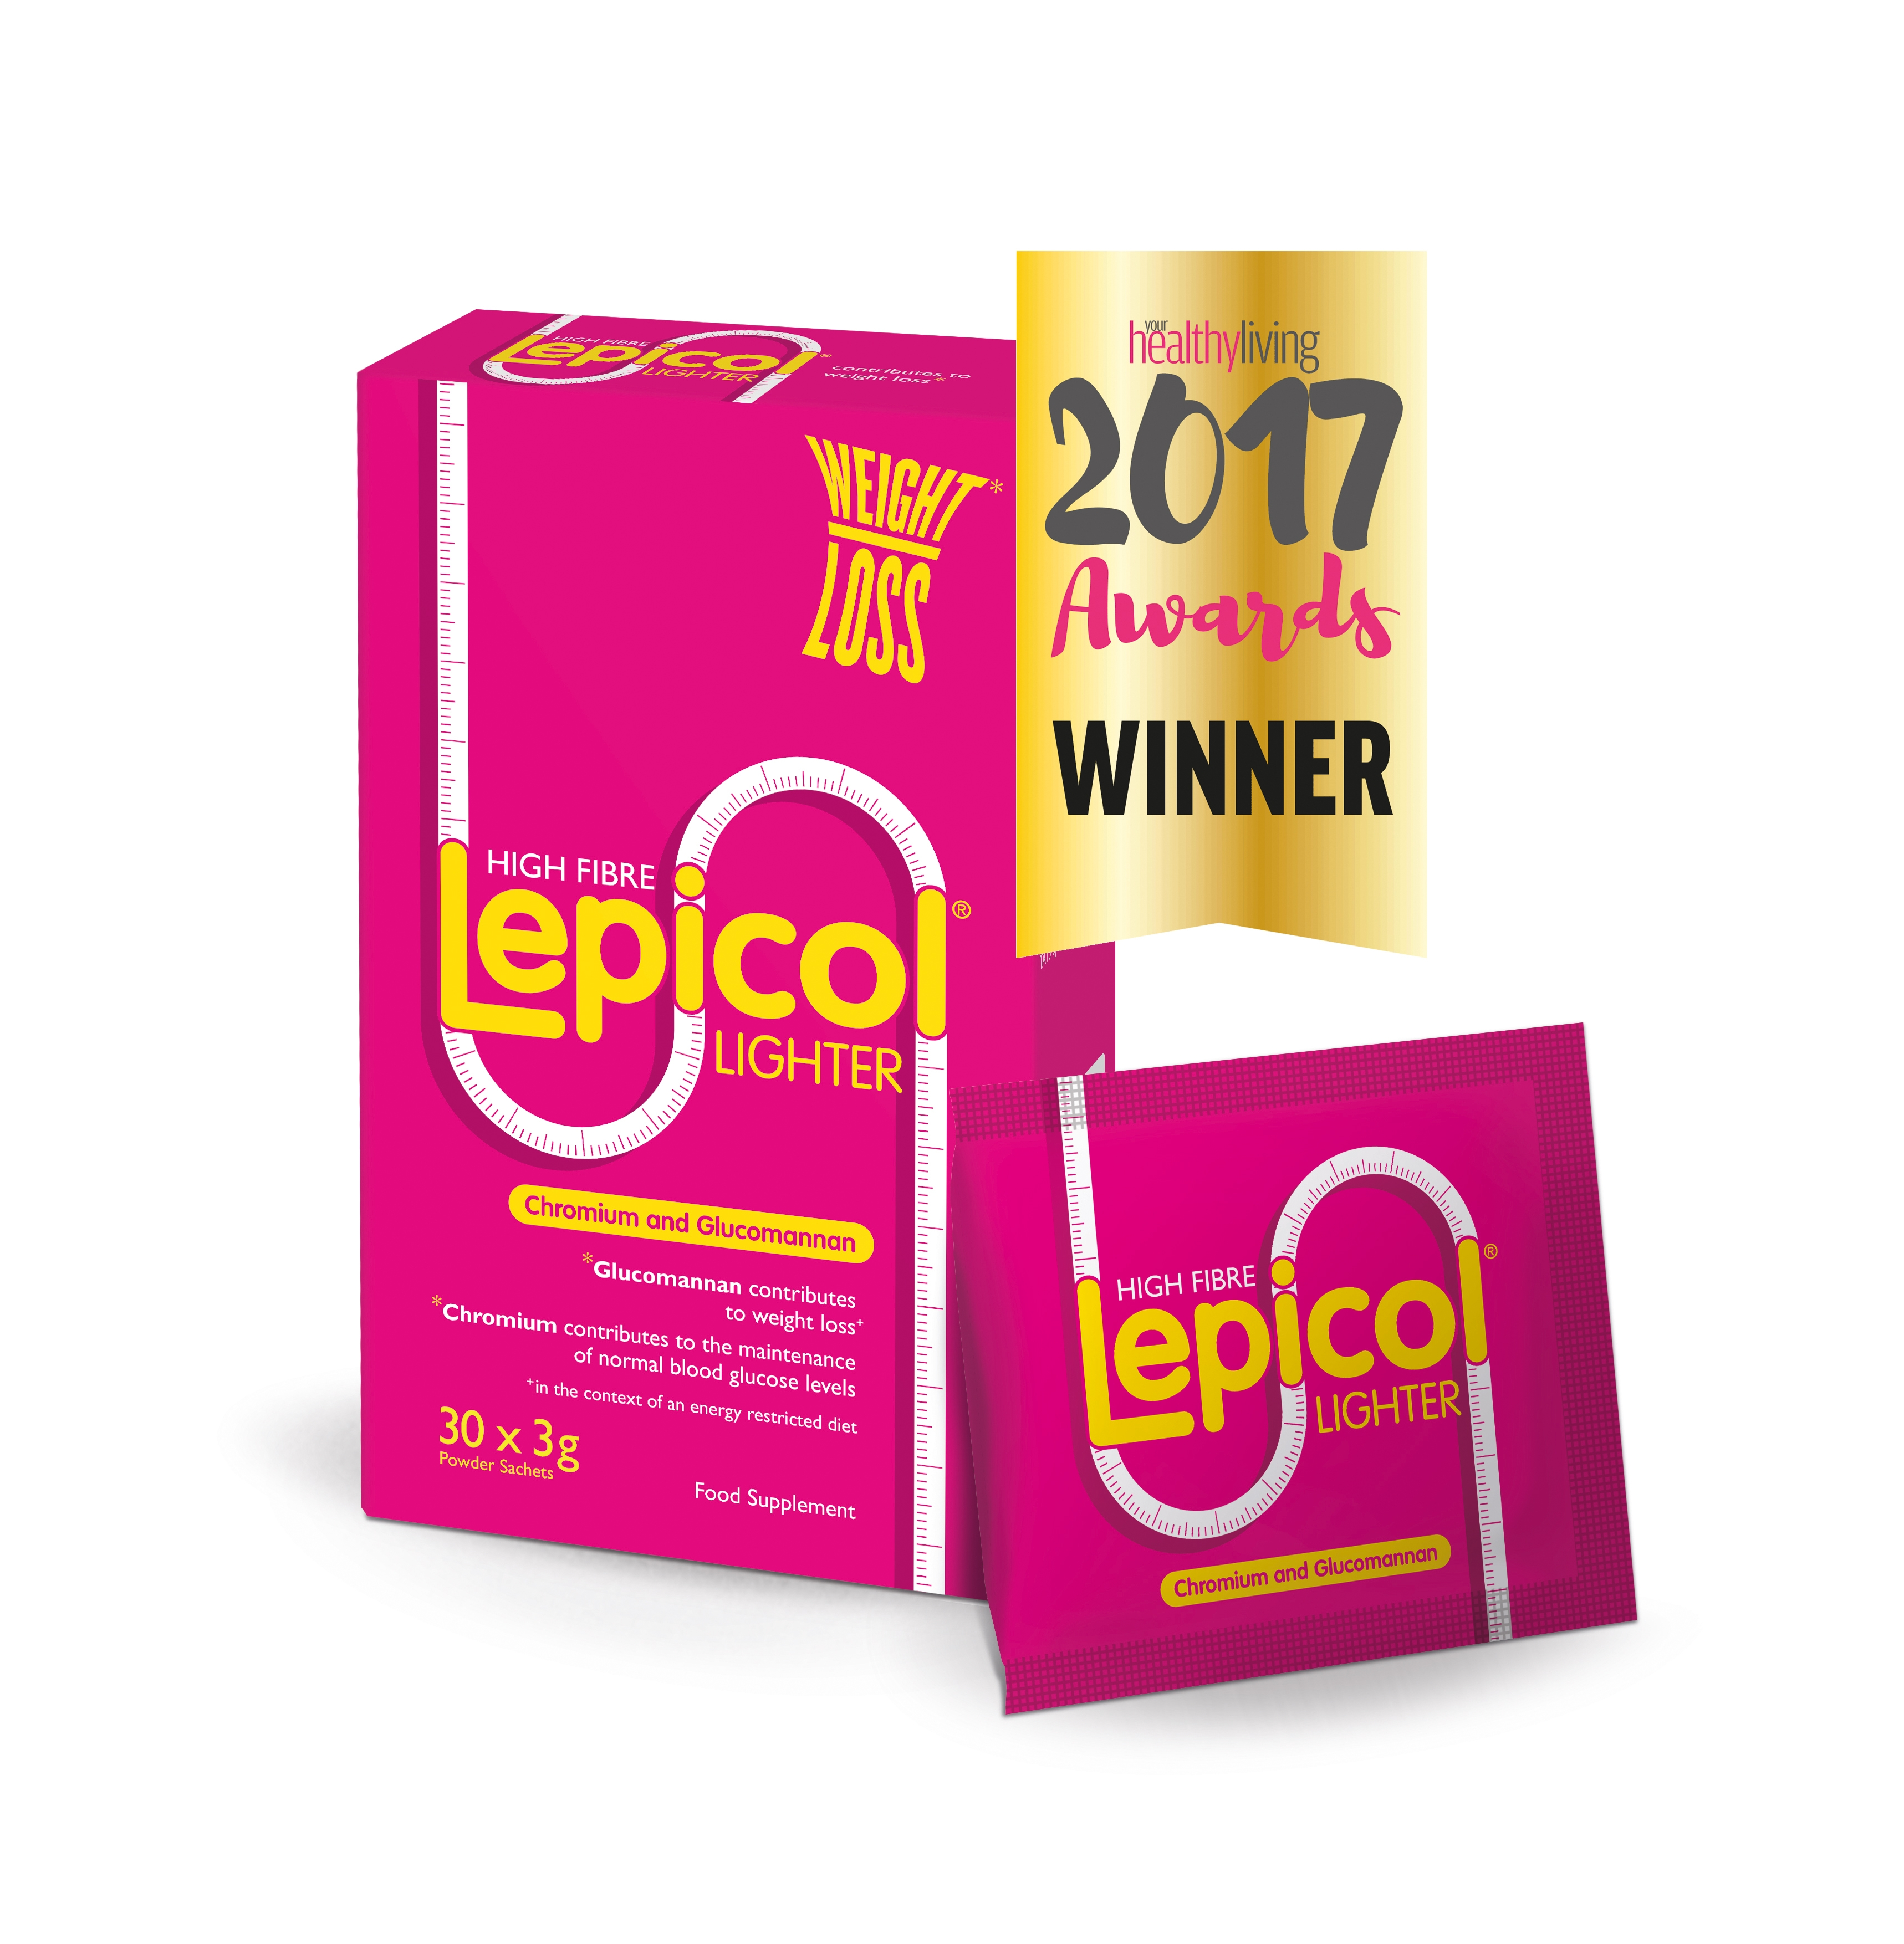 Lepicol Lighter wins Best Slimming and Fitness Product 2017